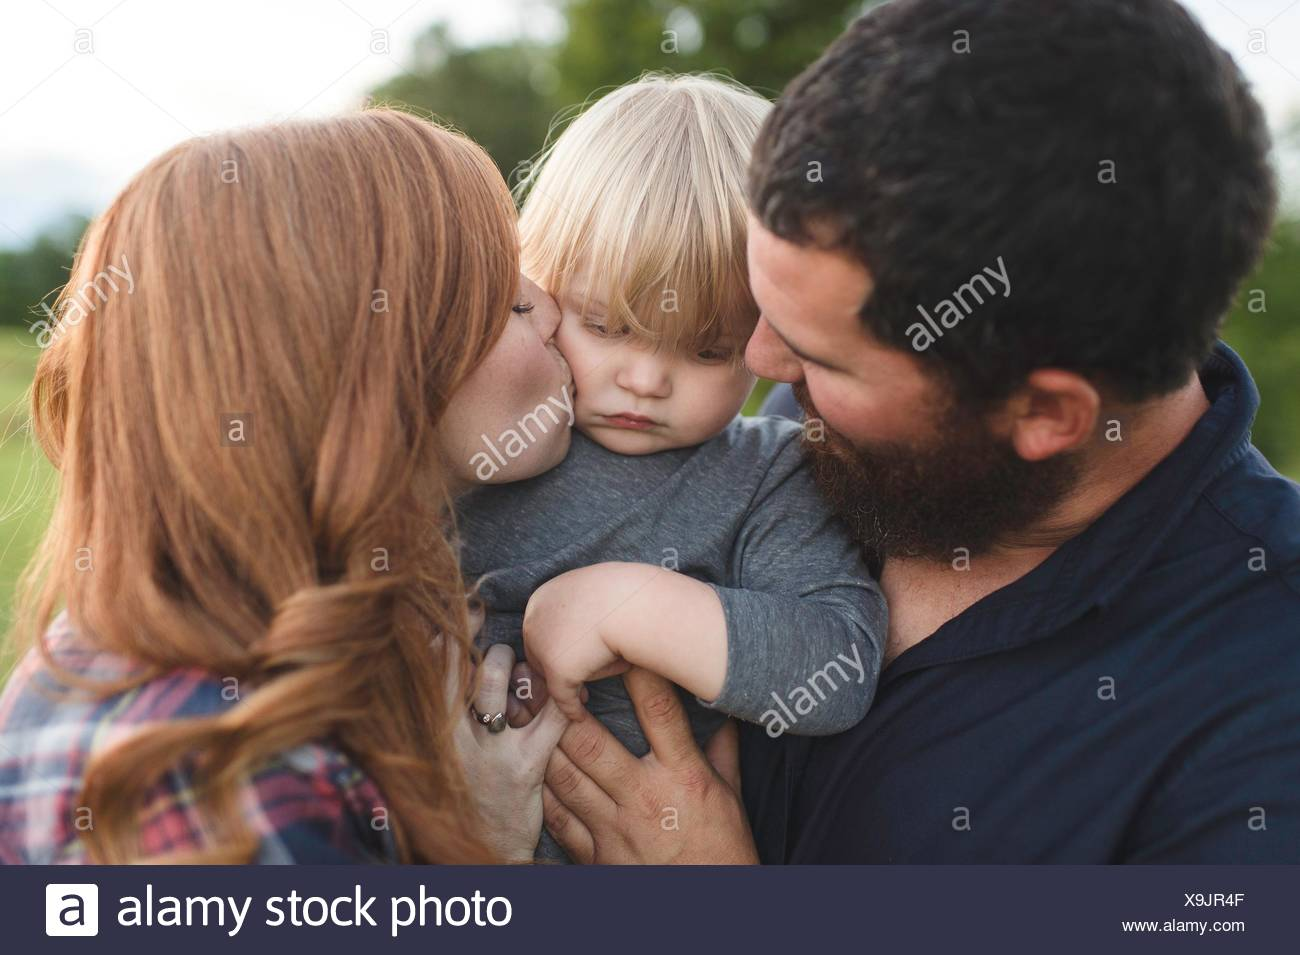 Mother and father holding young son, outdoors - Stock Image